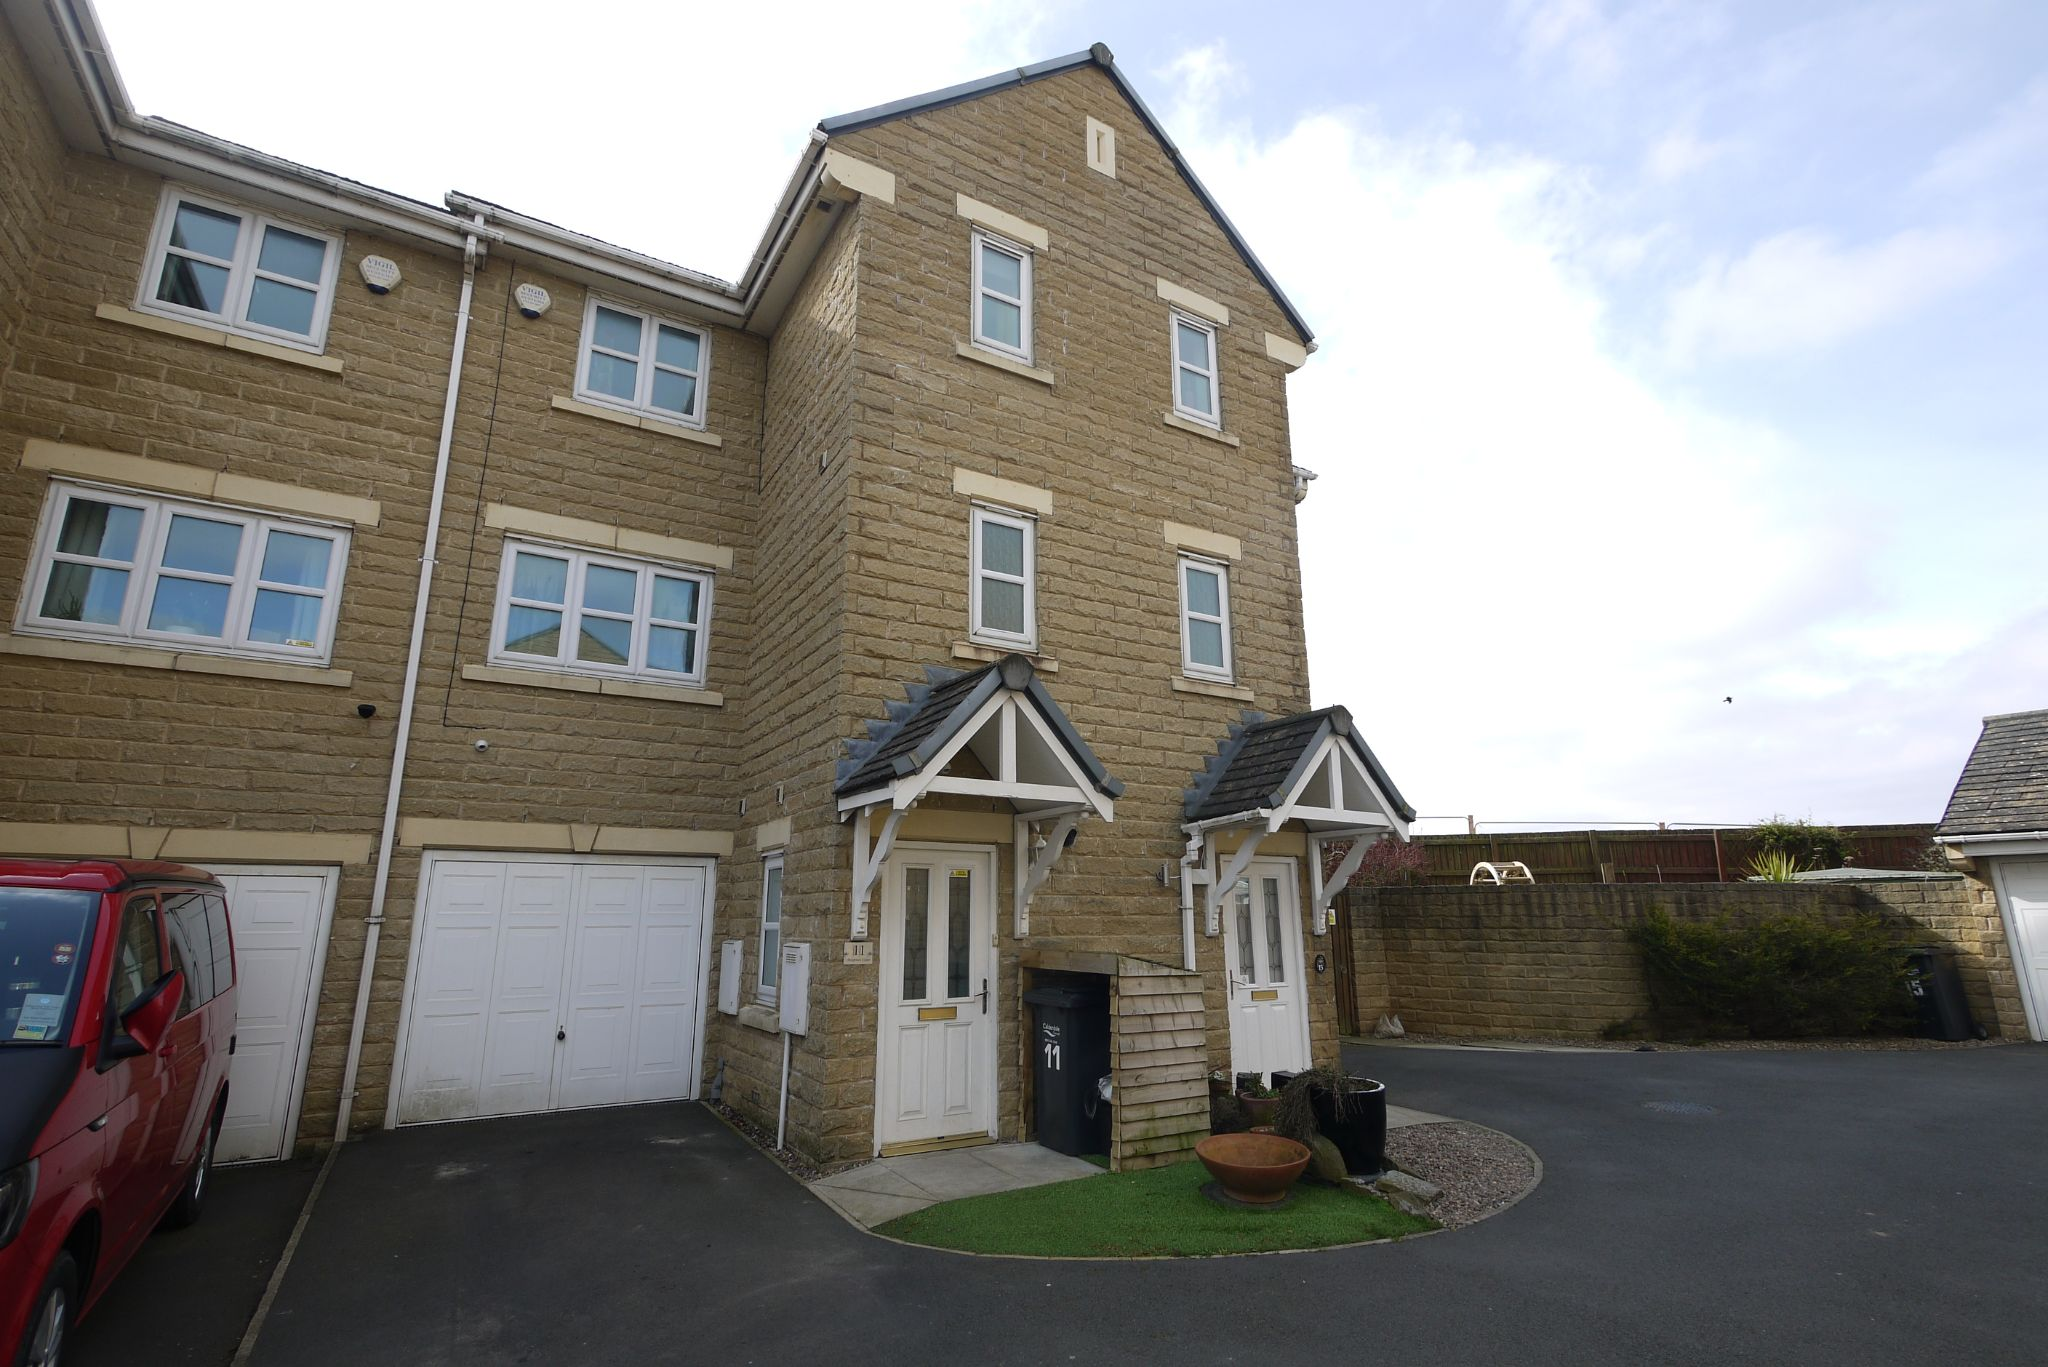 4 bedroom town house SSTC in Brighouse - Main.